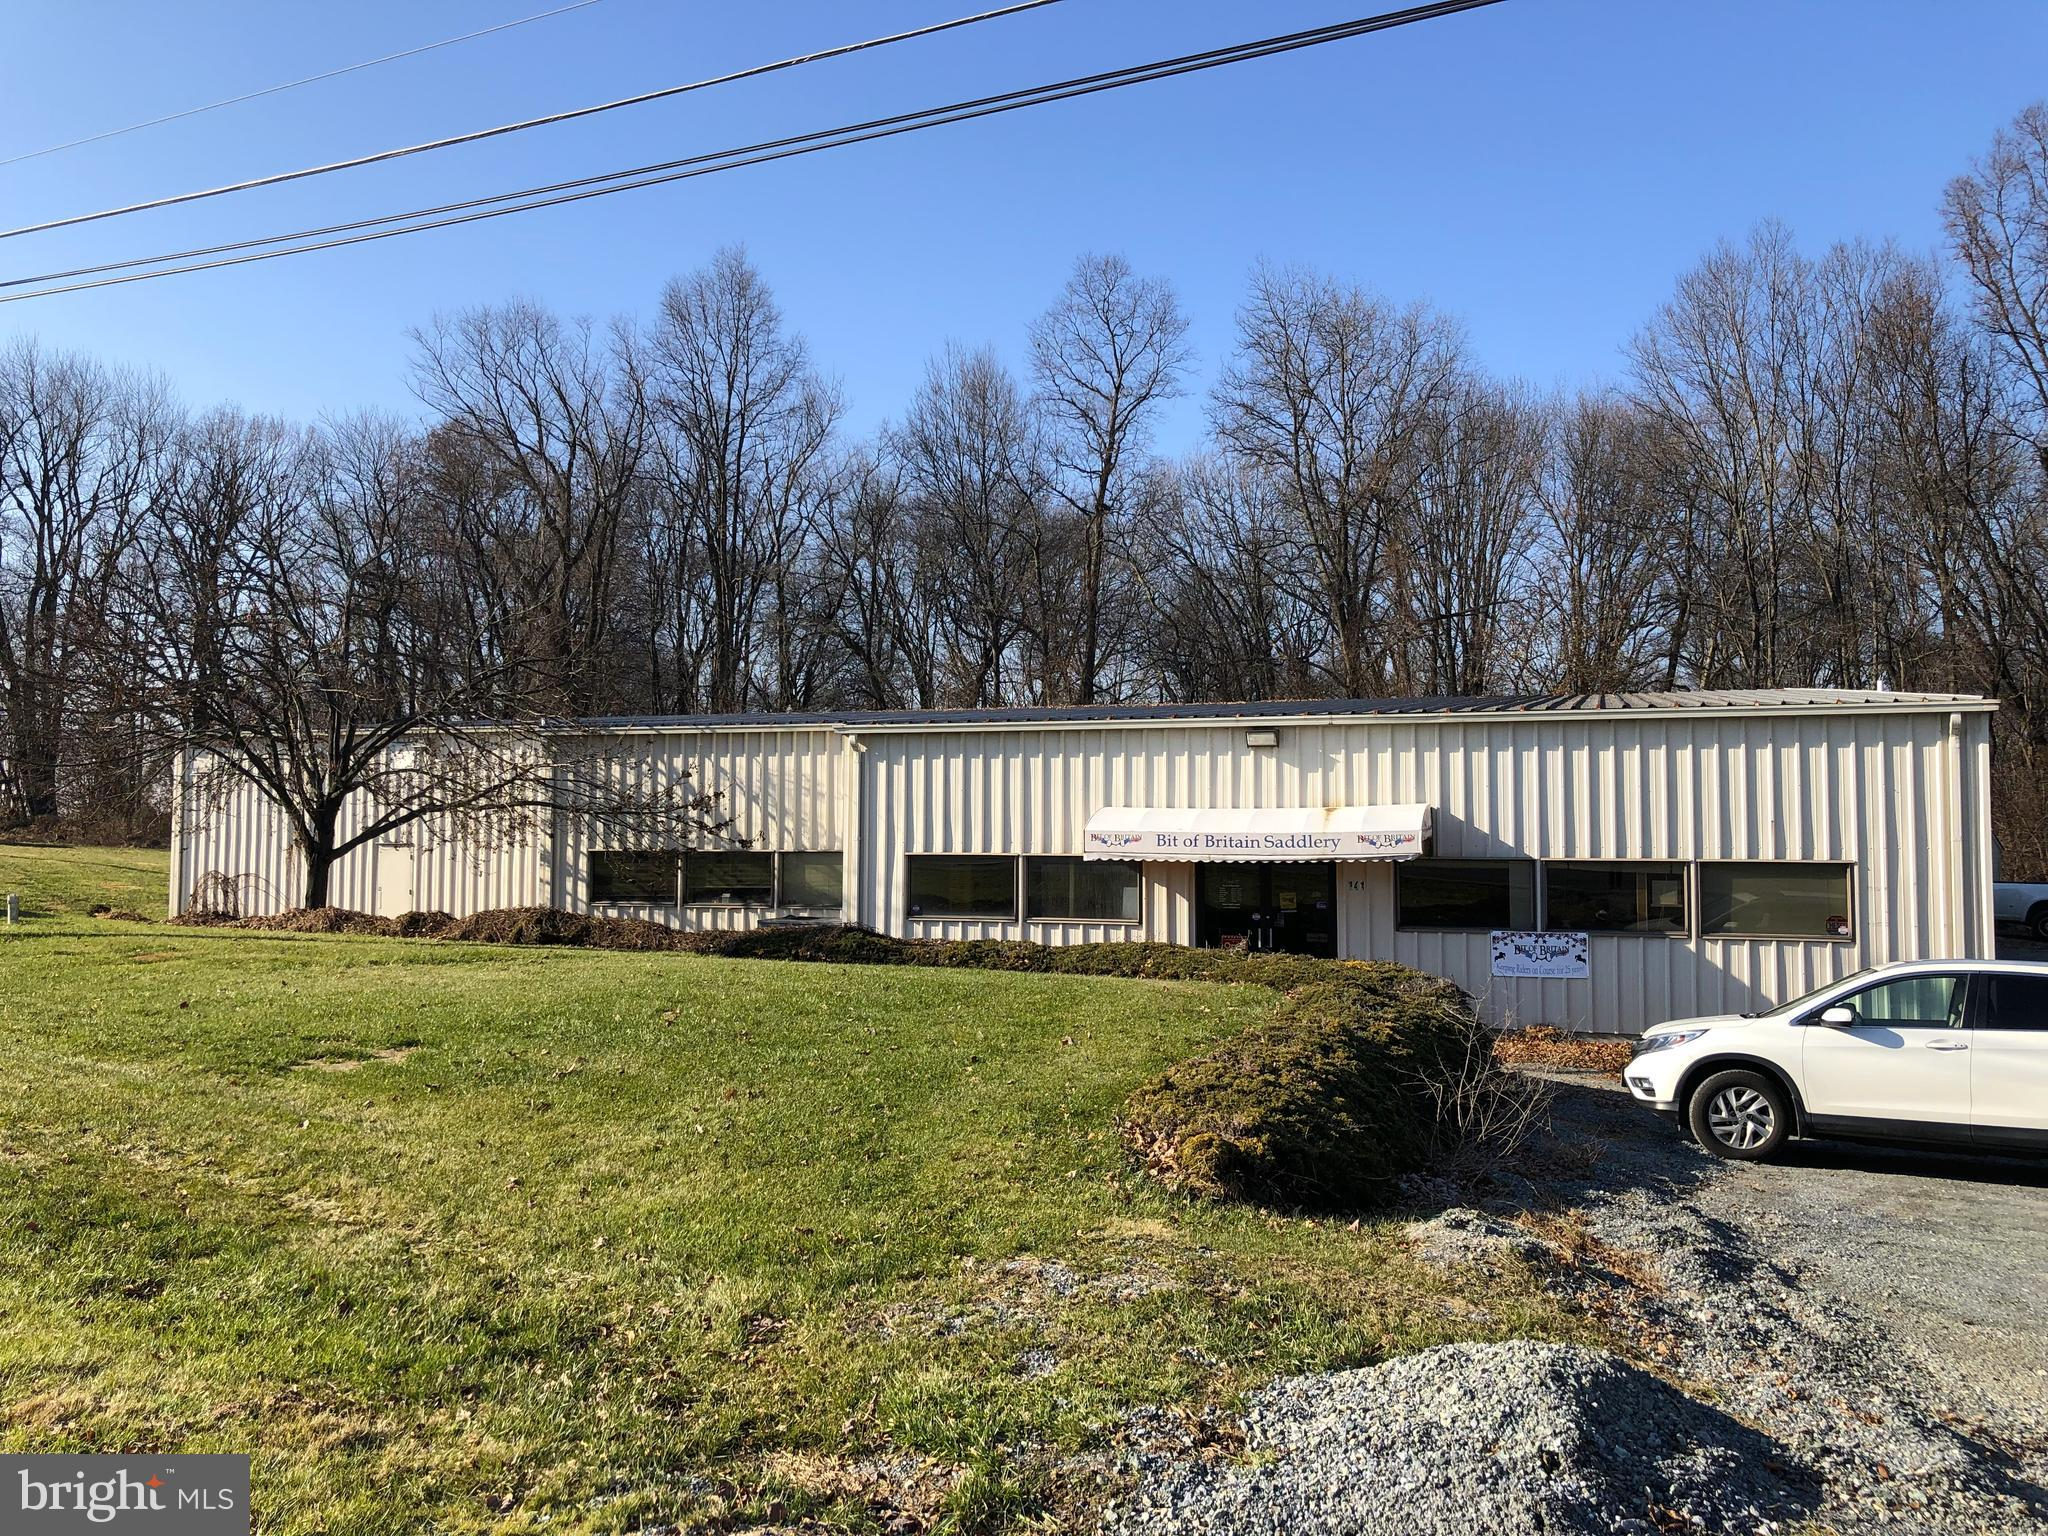 Sizable Industrial Flex/Warehouse Commercial Building conveniently located just off US1 in Lower Oxford Township. Property is being offered for sale (Bright MLS#PACT484928) or NNN lease. Divisible into two suites with common area included in both spaces with access to overhead dock door. Great Signage and visibility from US-1. Ample Parking. 3 Phase Electric available. Central A/C in the Office. Warehouse SF: 5,410/Office SF: 1,080/Retail SF: 1,080 in current layout. Suite 1 layout would feature 5,496sf of Flex space and 540sf of common area access to the overhead door for deliveries/shipments. See Documents for Floor Plan. Suite 2 layout would feature 5,400sf Warehouse space, 696sf Office, and 540sf common area providing access to the overhead door for deliveries/shipments. Also known as 141 Union School Rd (USPS).